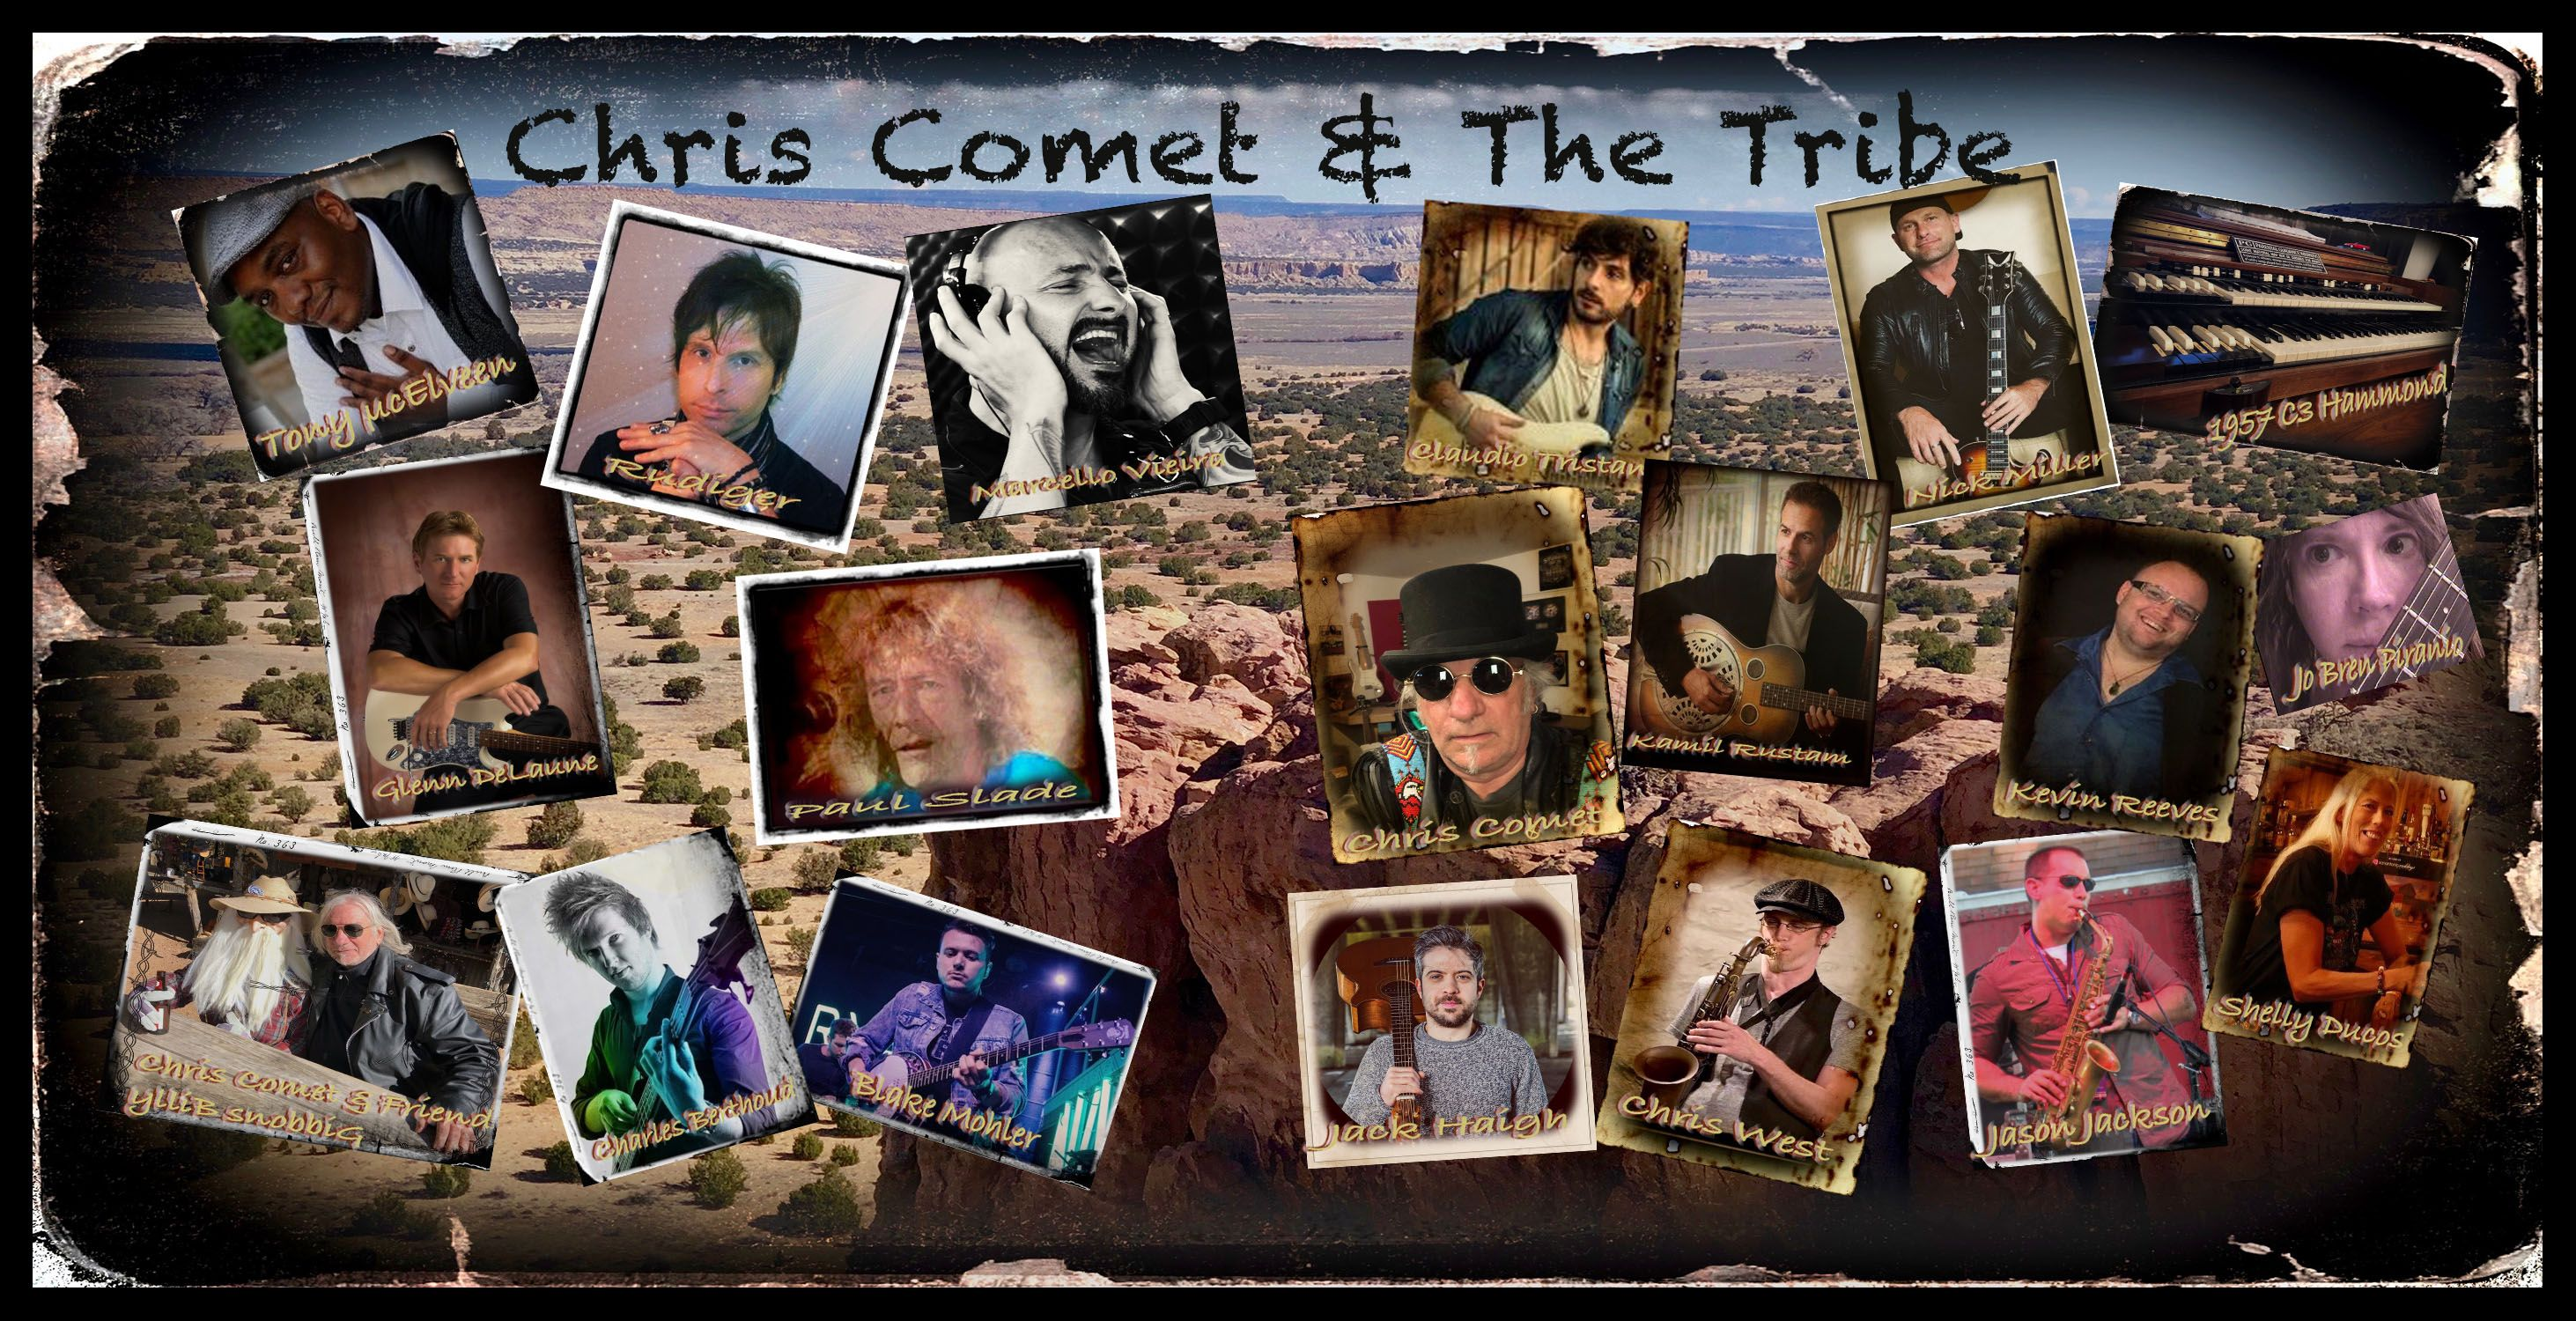 Chris Comet and The Tribe